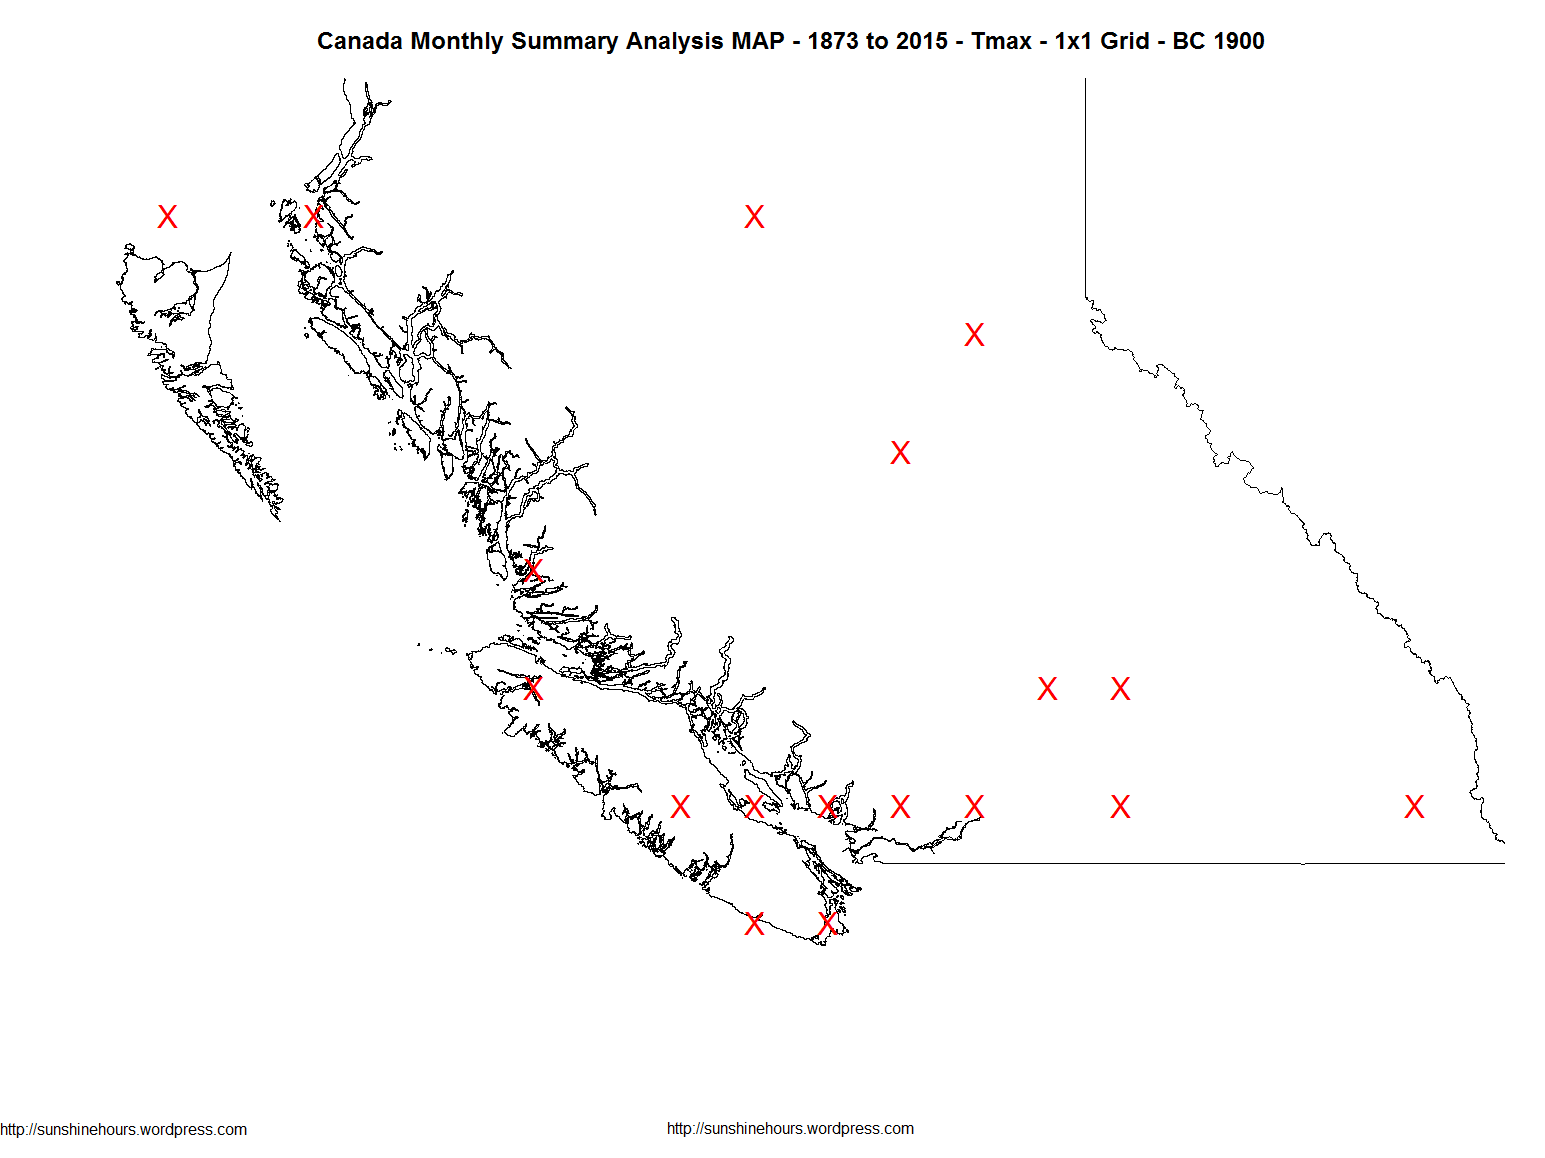 Map Of Canada In 1873.Mapping British Columbia Canada Tmax Tmin And Tmean From 1873 On